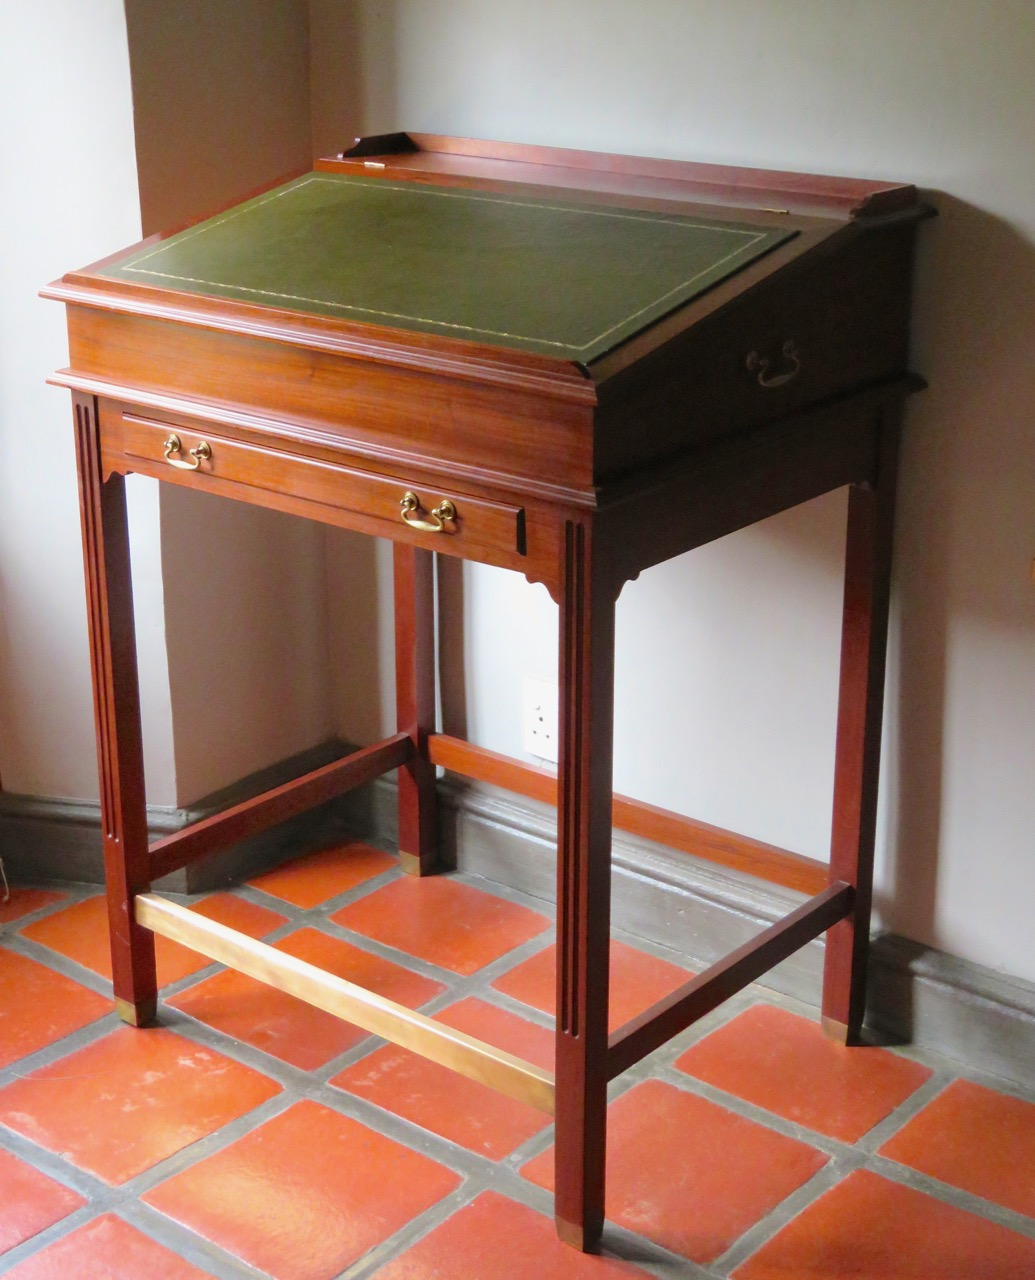 An early piece, a stand-up desk. Honduran mahogany, brass footrest, leather writing surface.